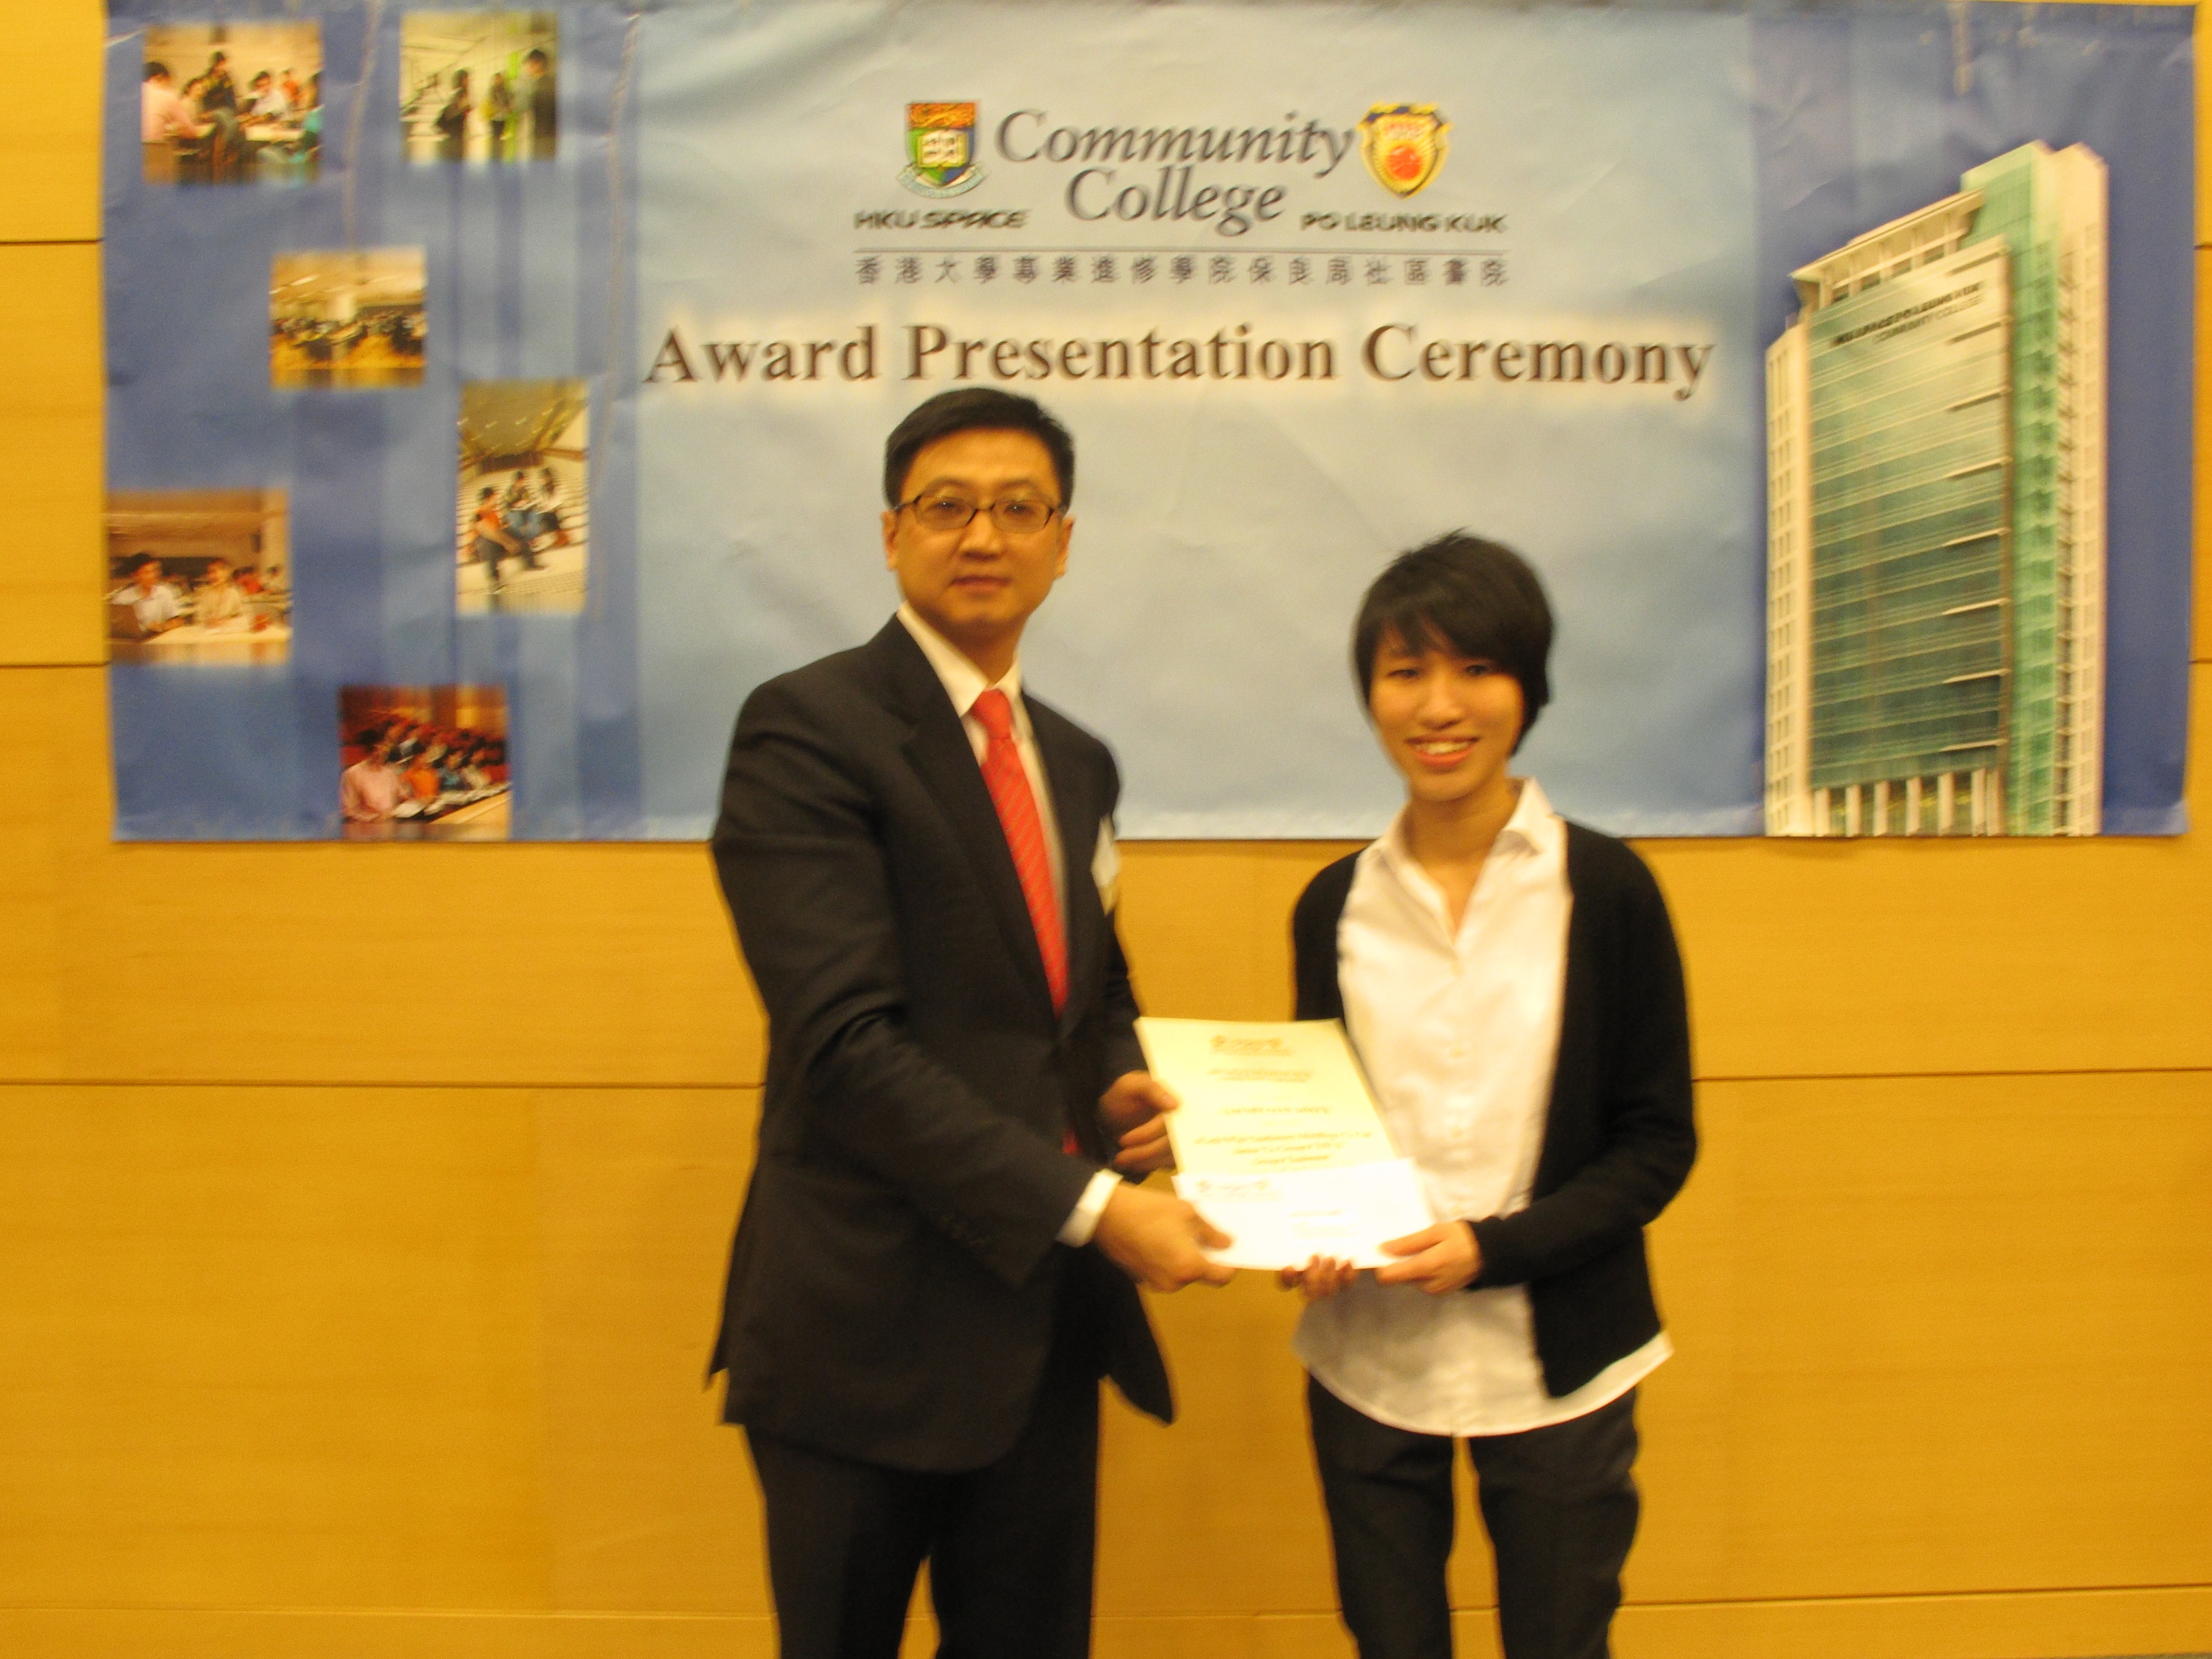 Award Presentation Ceremony 2011 - Photo - 21